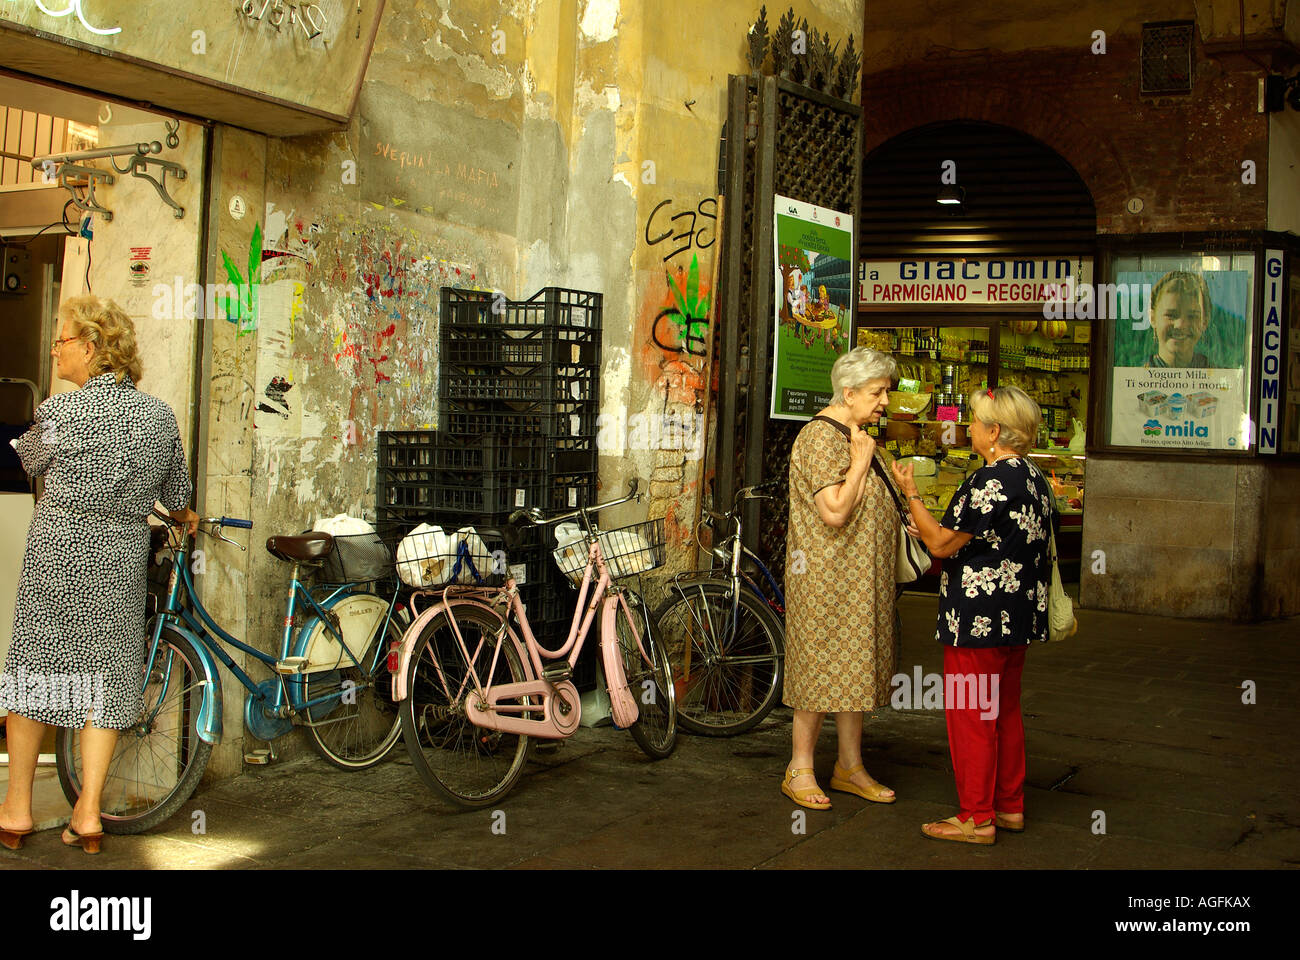 Two women gossiping next to graffiti and a bicycle in the food market of Palazzo della Ragione Padua (Padova) Italy - Stock Image